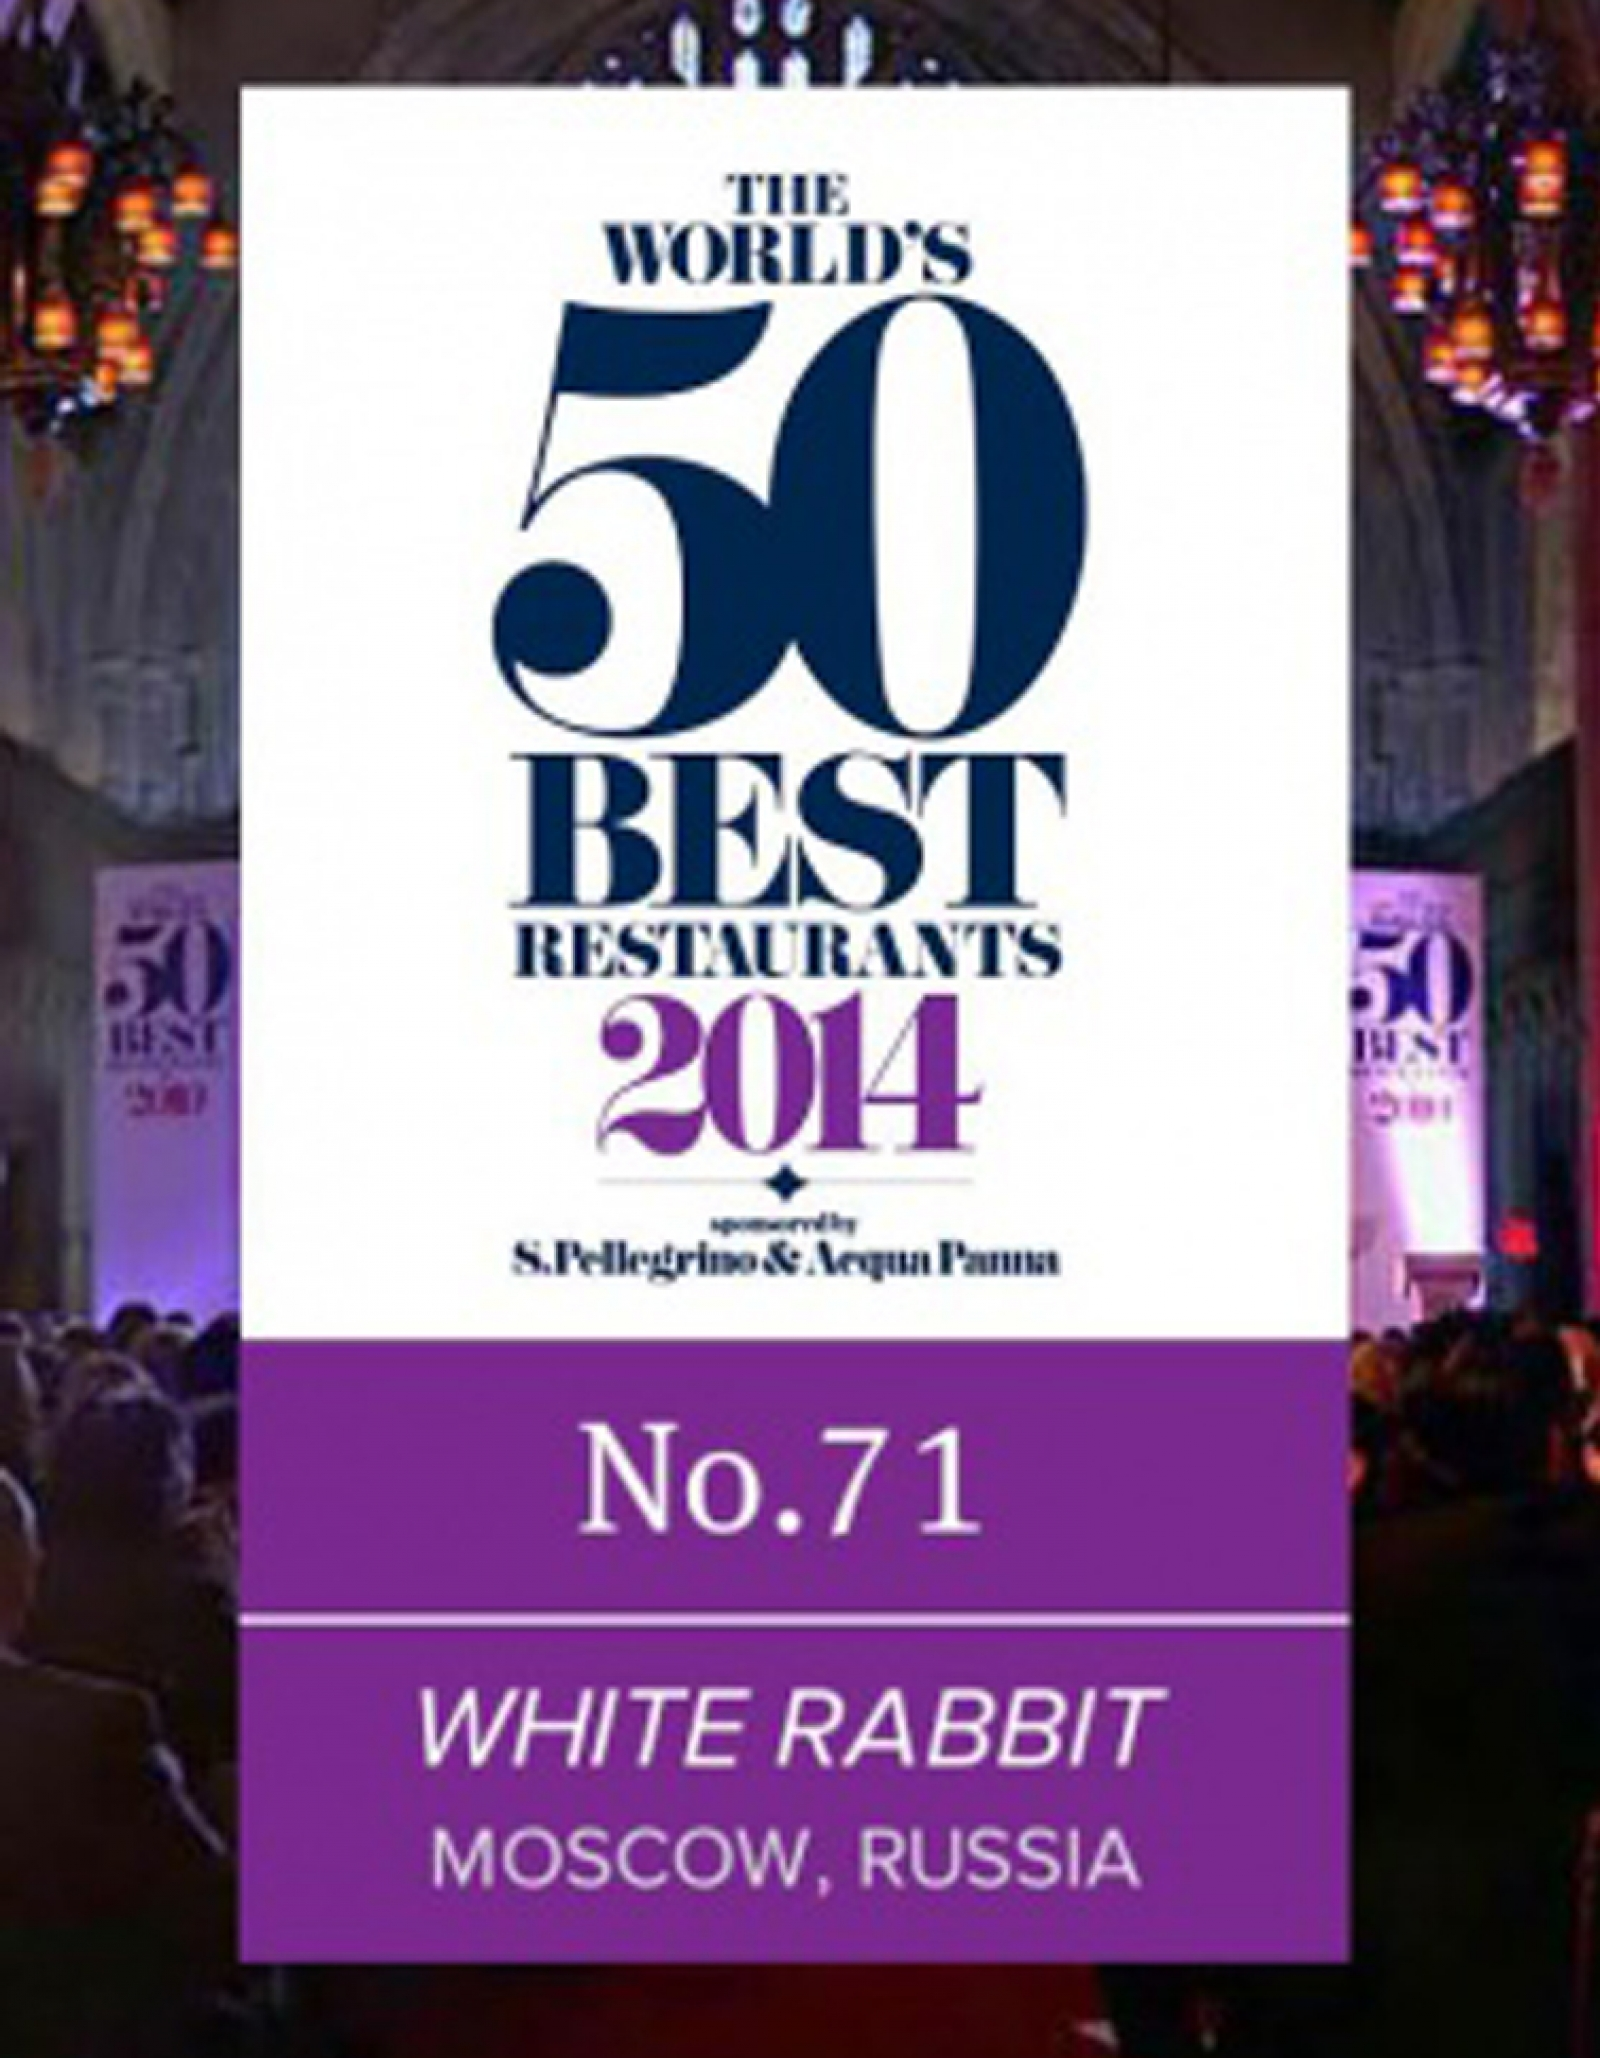 WHITE RABBIT MOSCOW AMONG THE 100 BEST RESTAURANTS OF THE WORLD